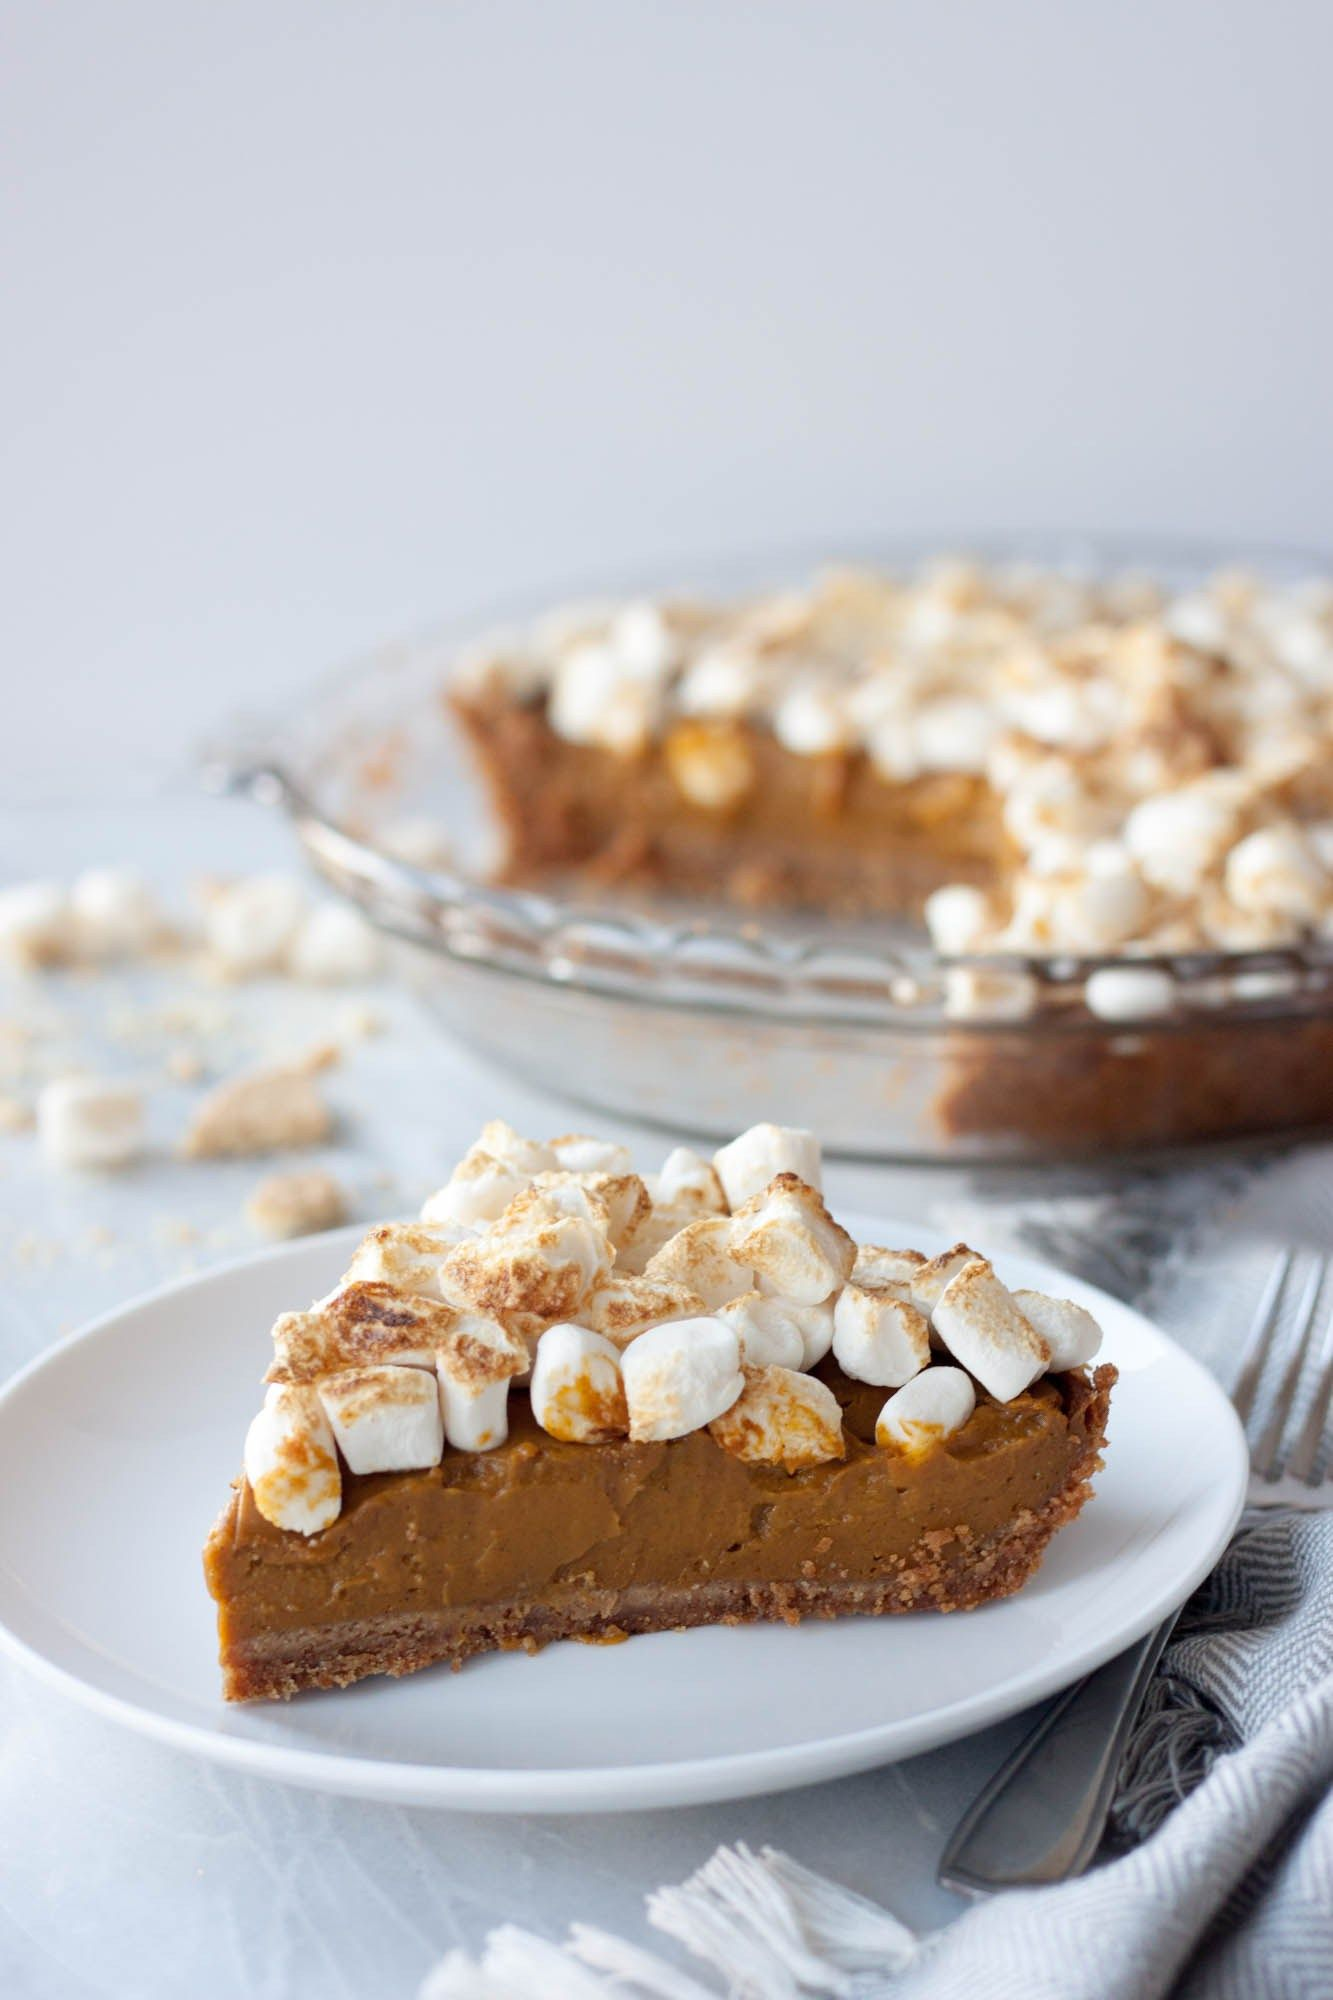 Vegan Sweet Potato Pie And Yes These Marshmallows Are Vegan Theveglife Com In 2020 Vegan Sweet Potato Pie Sweet Potato Pie Vegan Sweet Potato